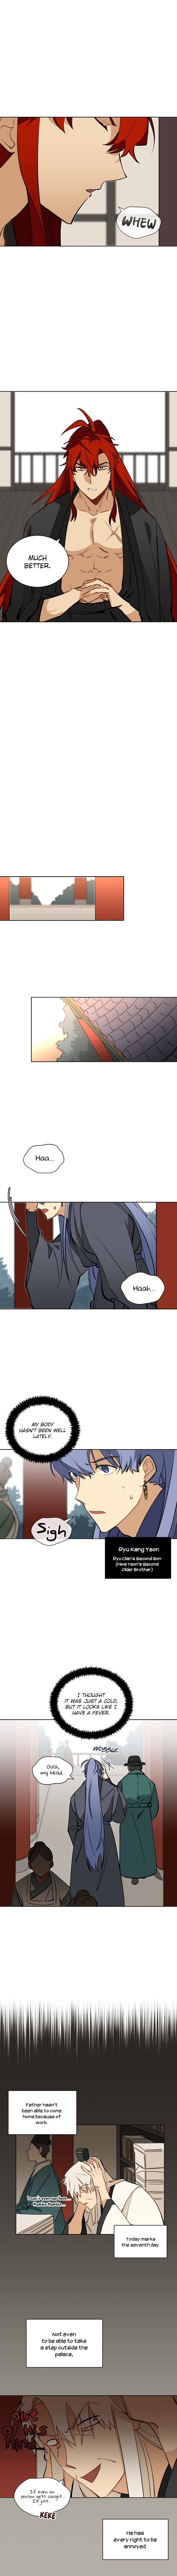 Beast with Flowers - chapter 20 - #3